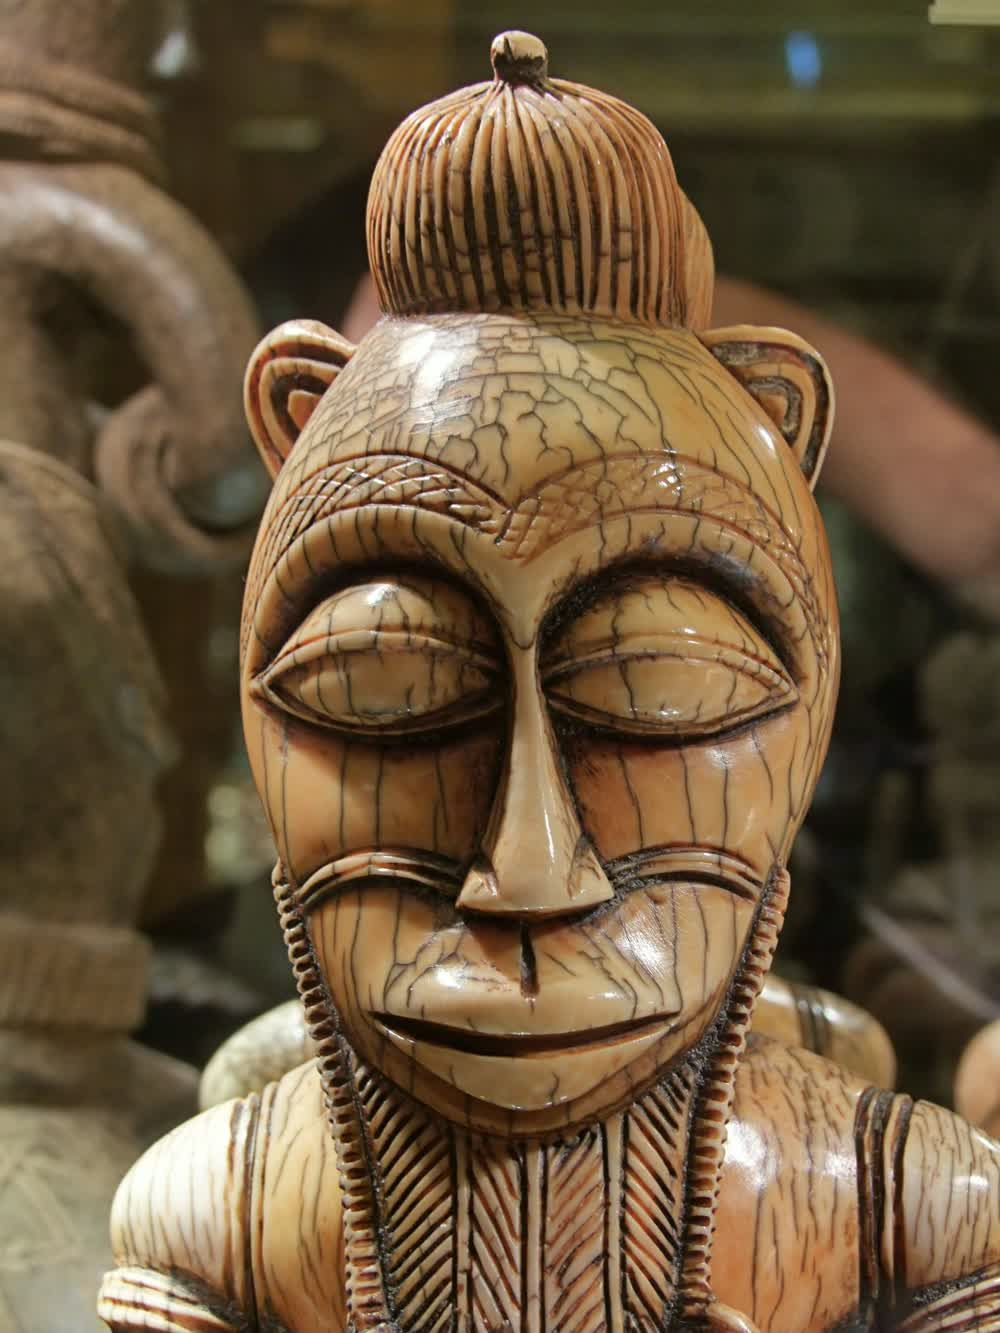 Tribal Head Bust Sculpture with Close Eyes